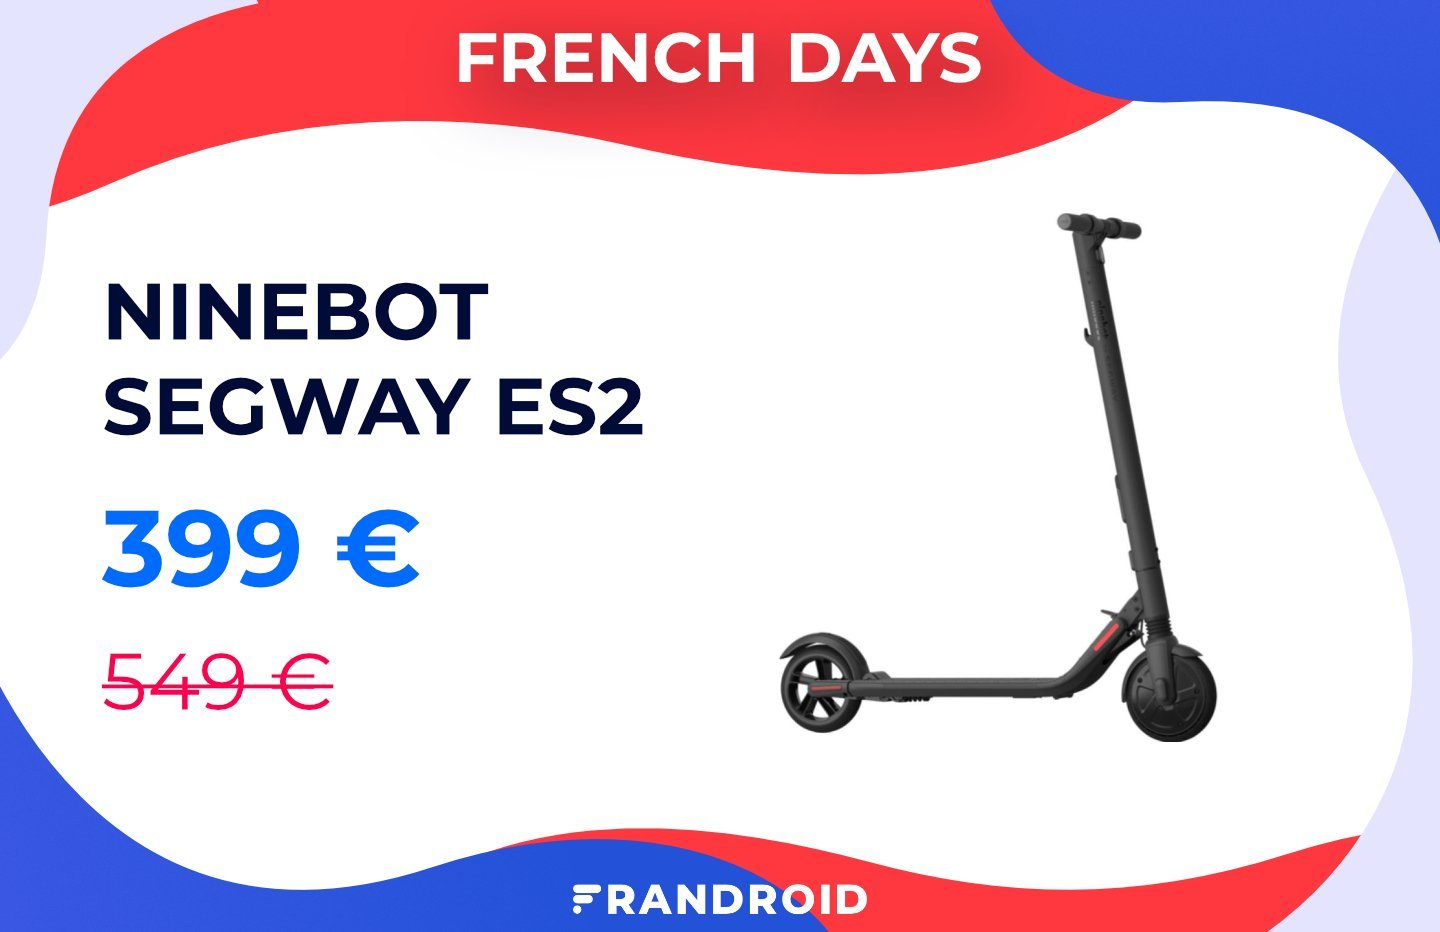 La trottinette Ninebot Segway ES2 profite d'une réduction de 150 euros pendant les French Days